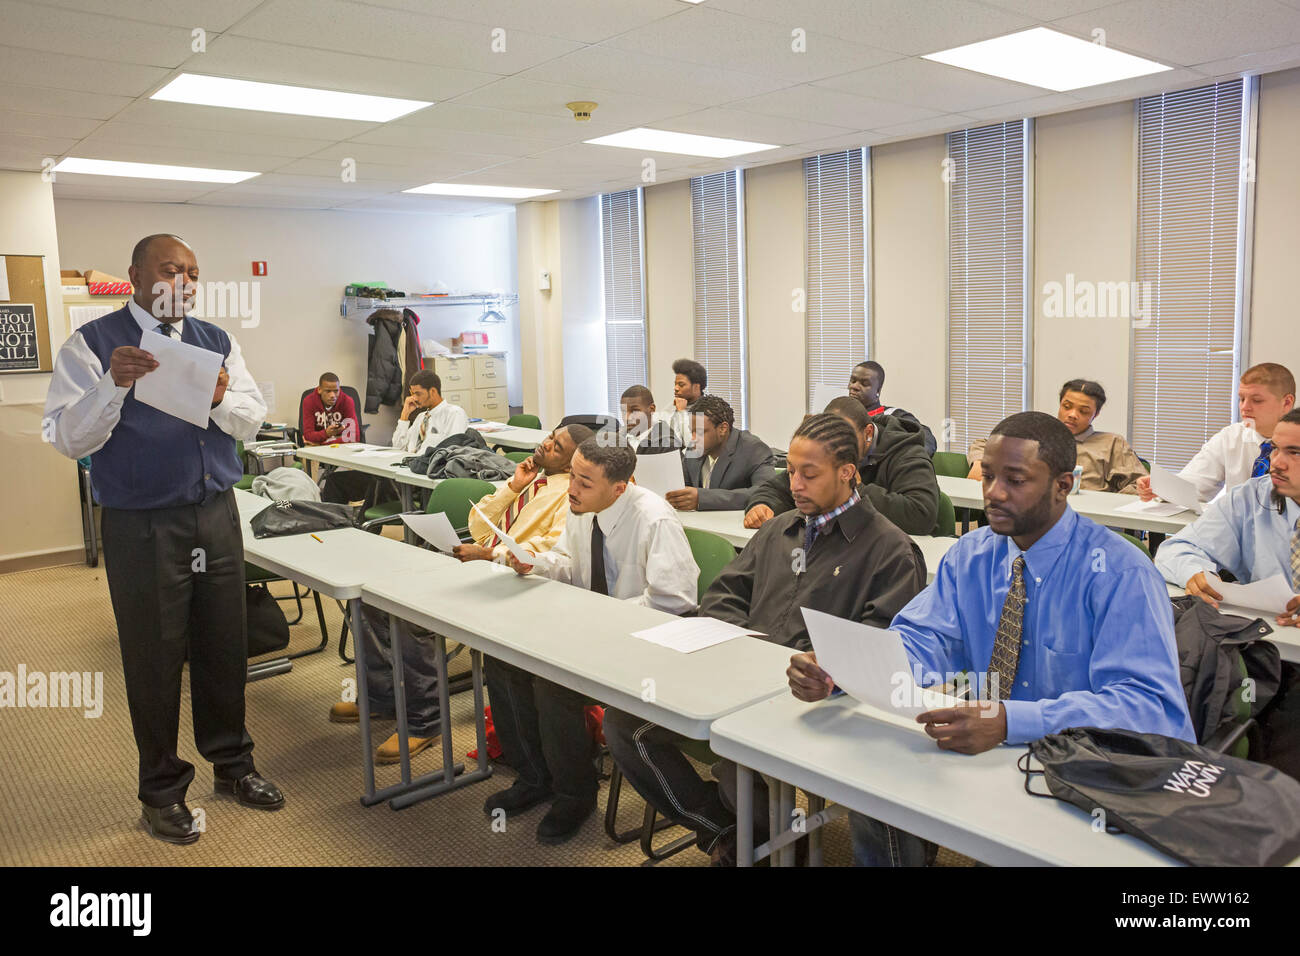 Detroit, Michigan - Young men participate in a financial literacy class as part of a Work Readiness program. - Stock Image